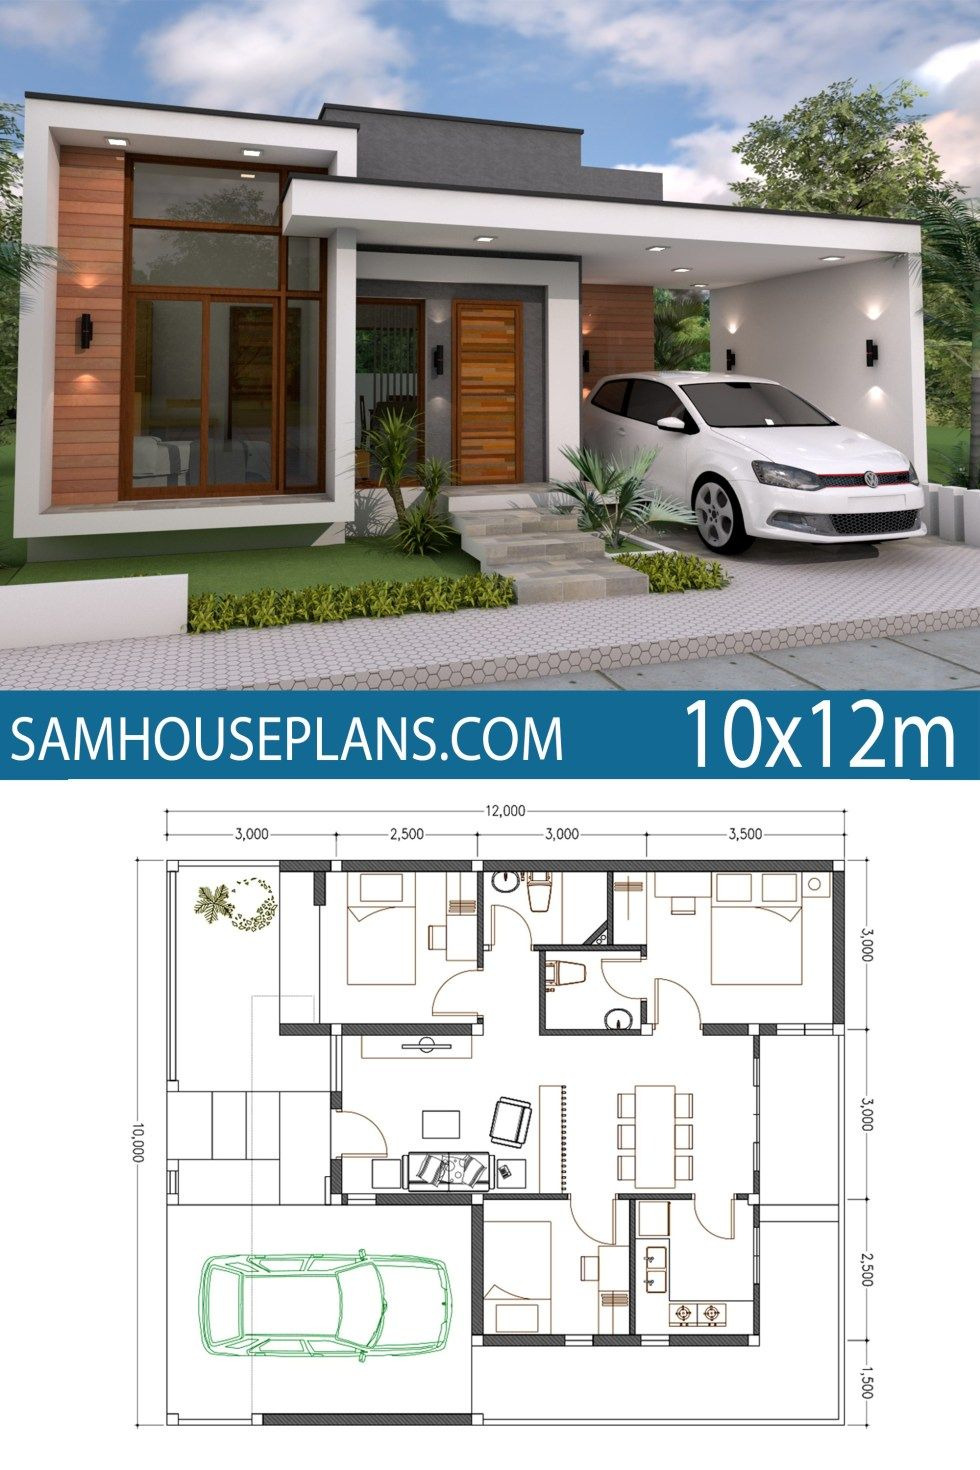 Minimalist Modern House Plans Beautiful Home Plan 10x12m 3 Bedrooms In 2020